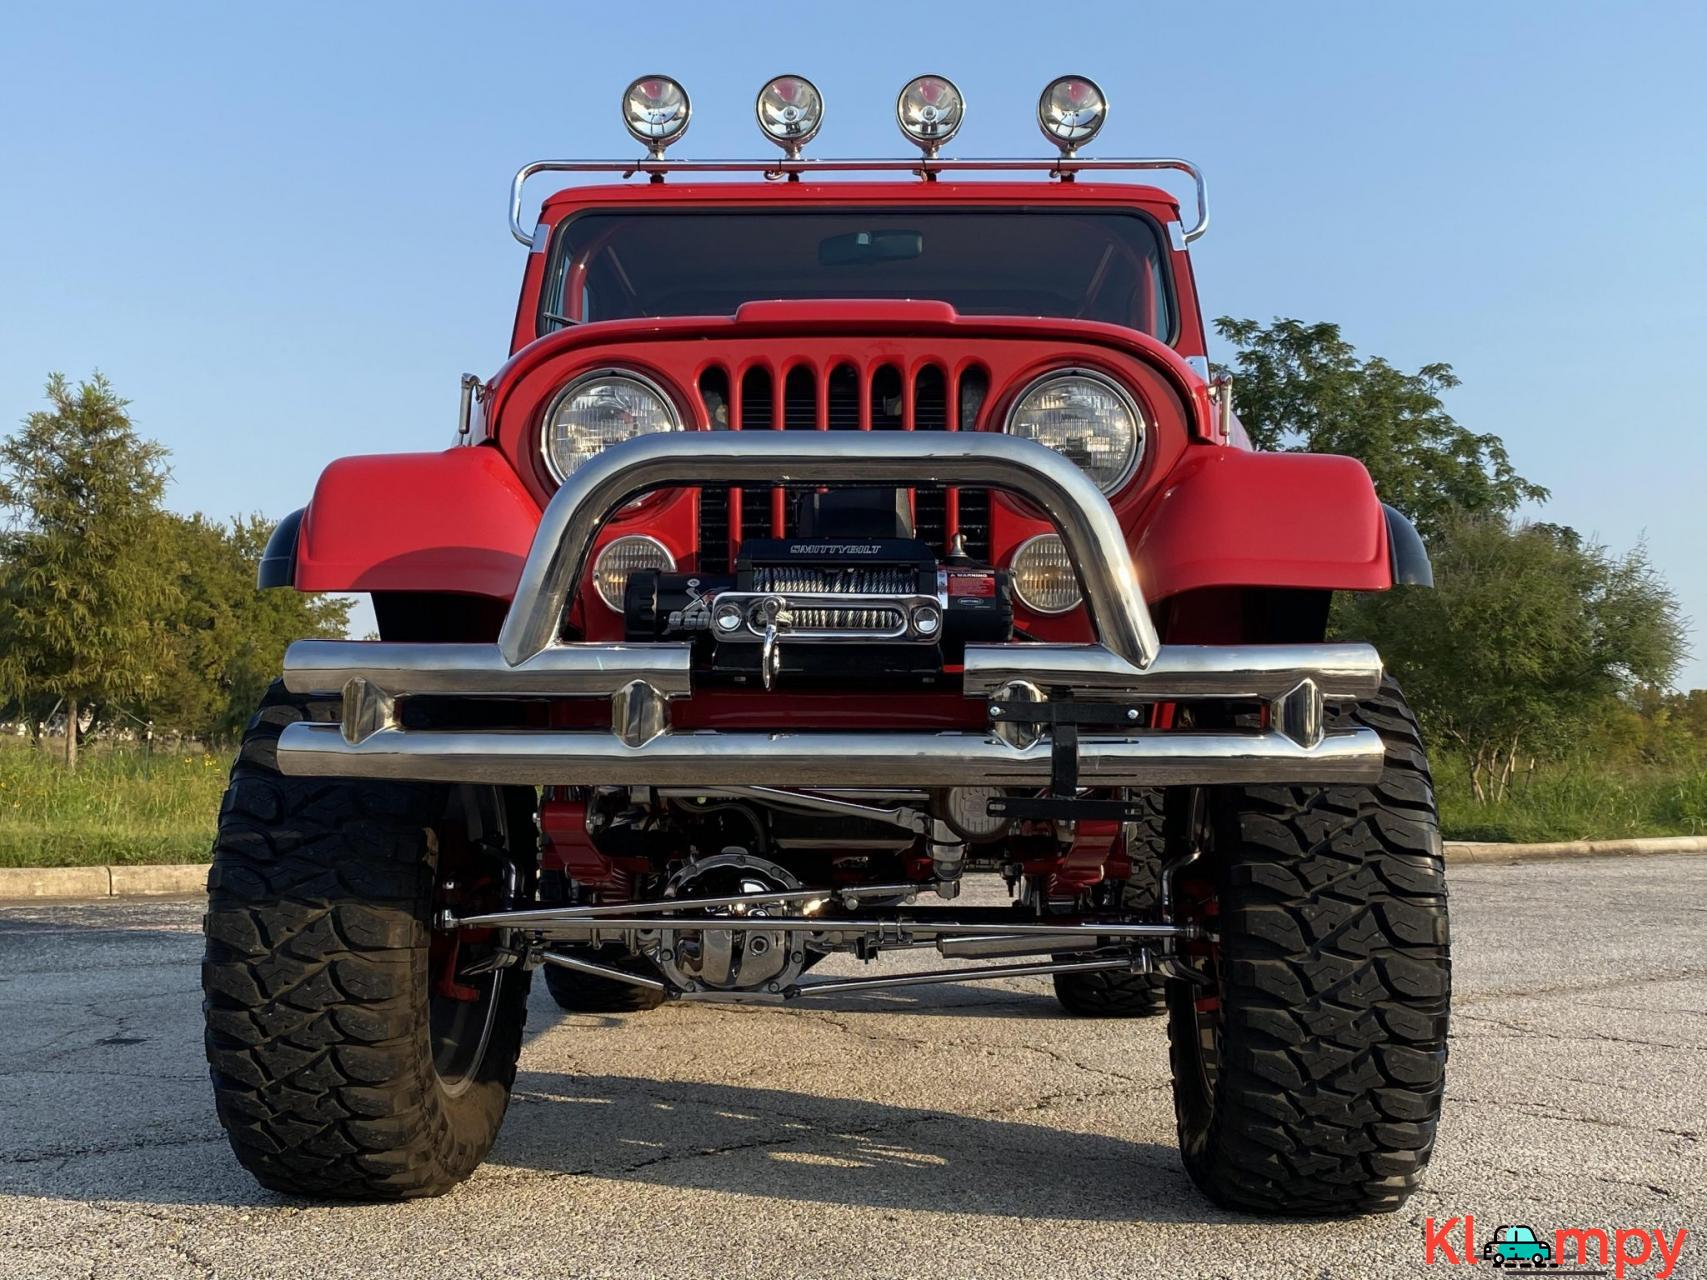 1983 Jeep CJ-7 Supercharged 350 V8 - 8/20